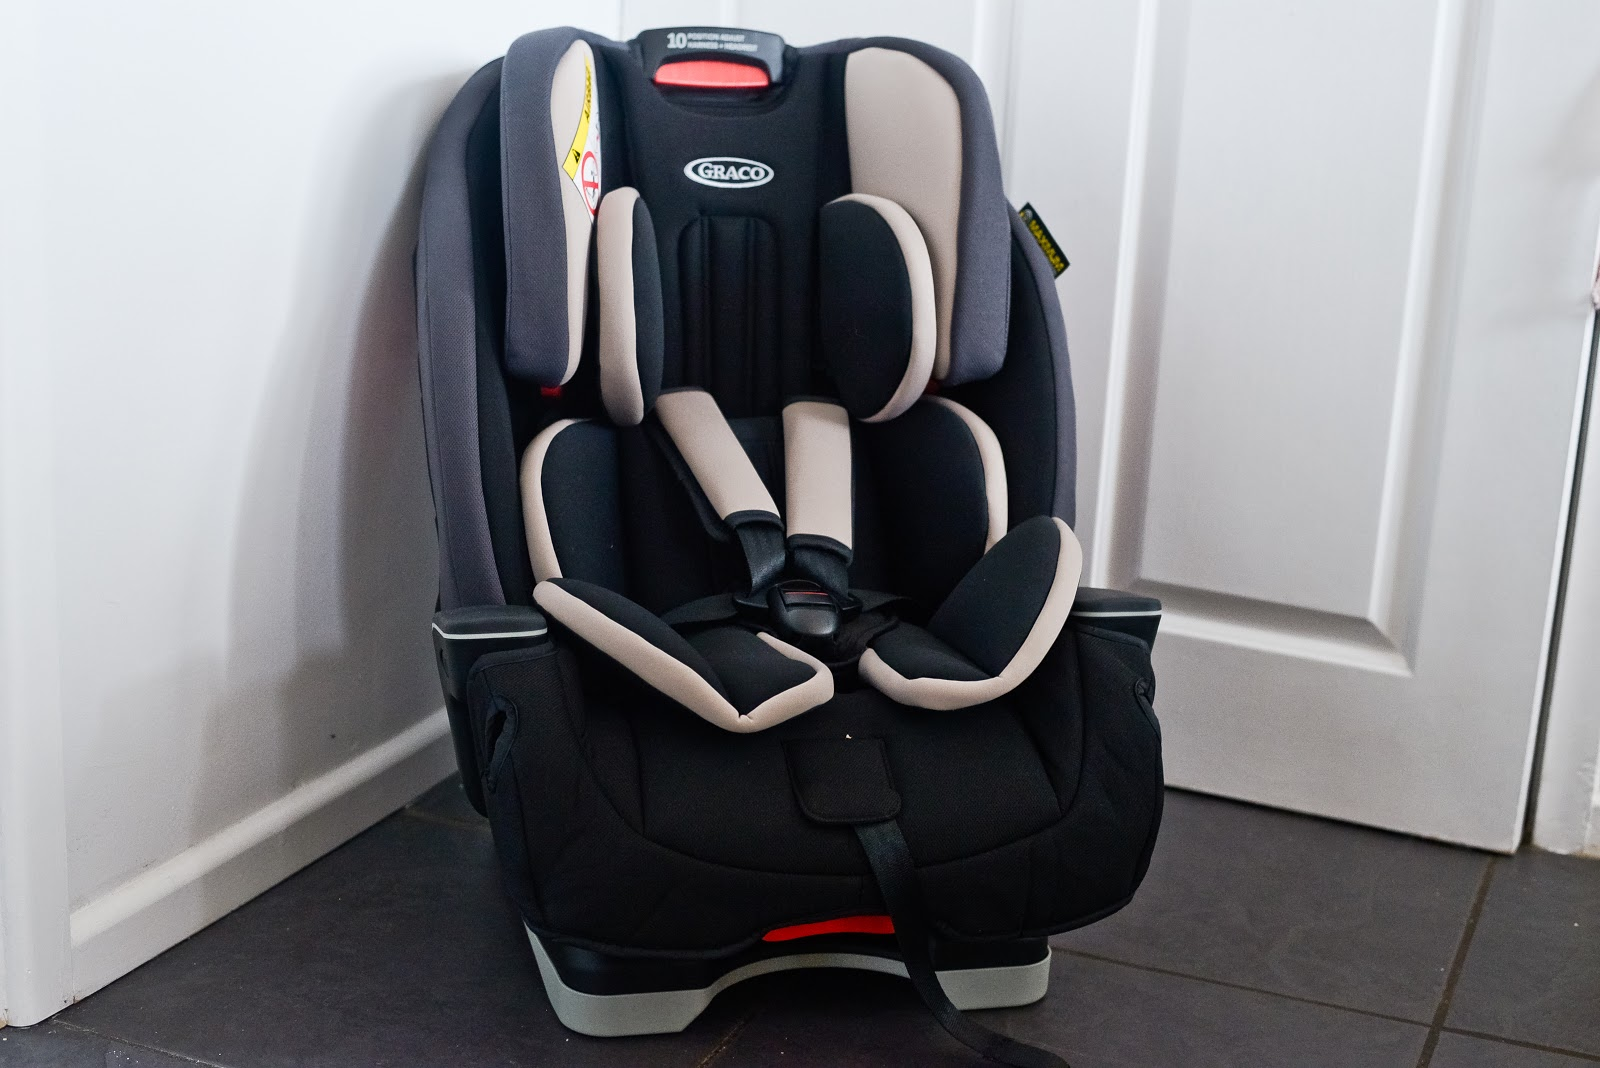 Graco all in one Milestone car seat review, Graco Milestone car seat review